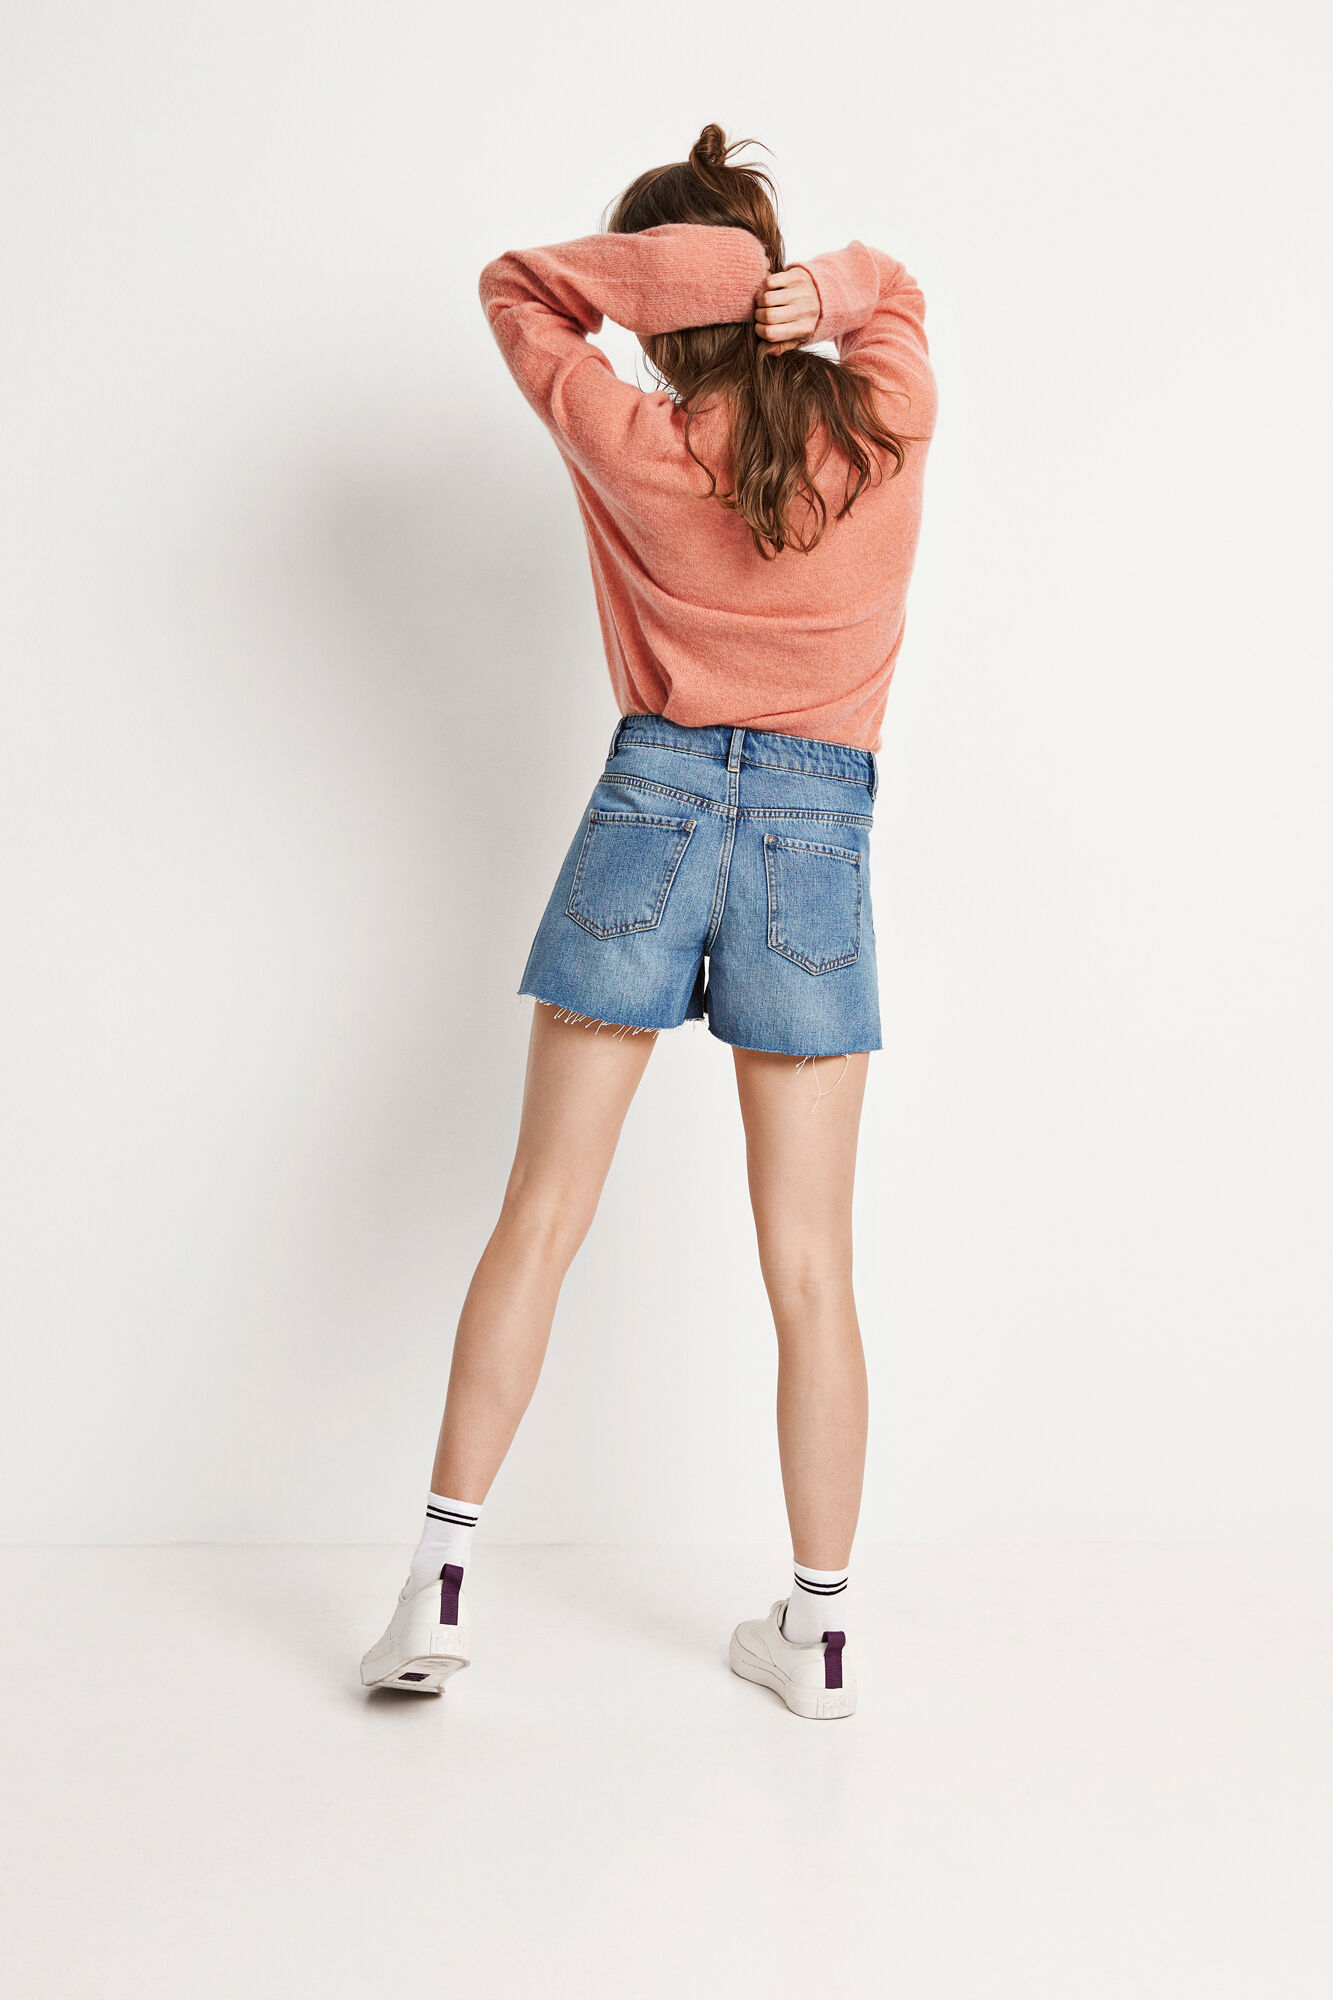 ENSETTLER DENIM SHORTS 6463, WORN BLUE